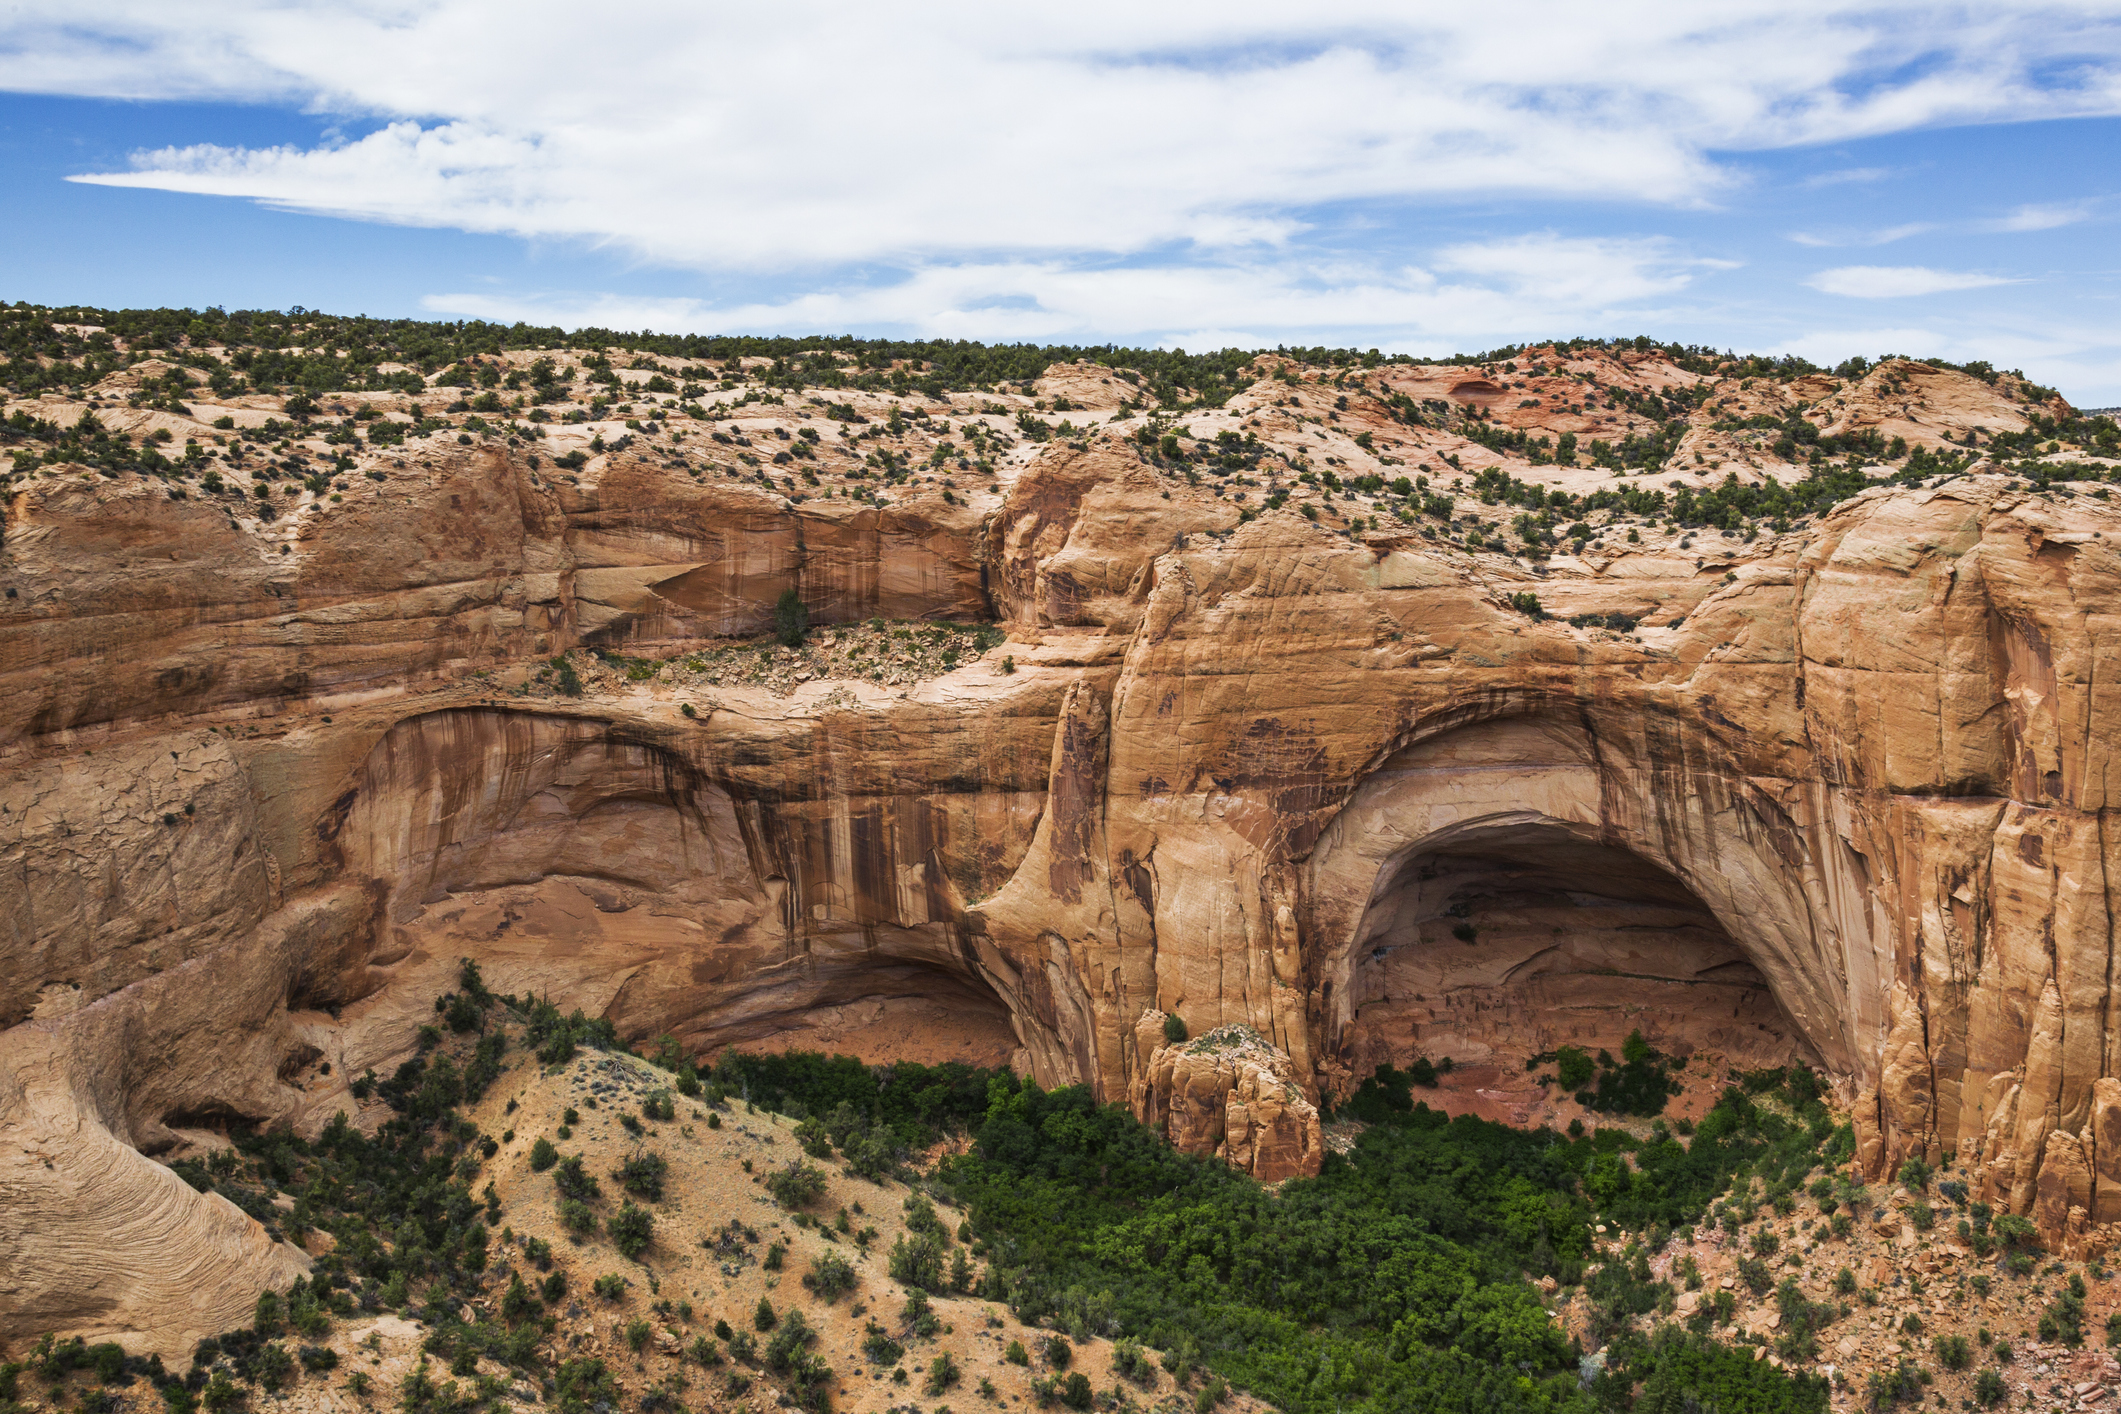 Visit These Fascinating Cliff Dwelling Ruins In Arizona For An Adventure Into The Past